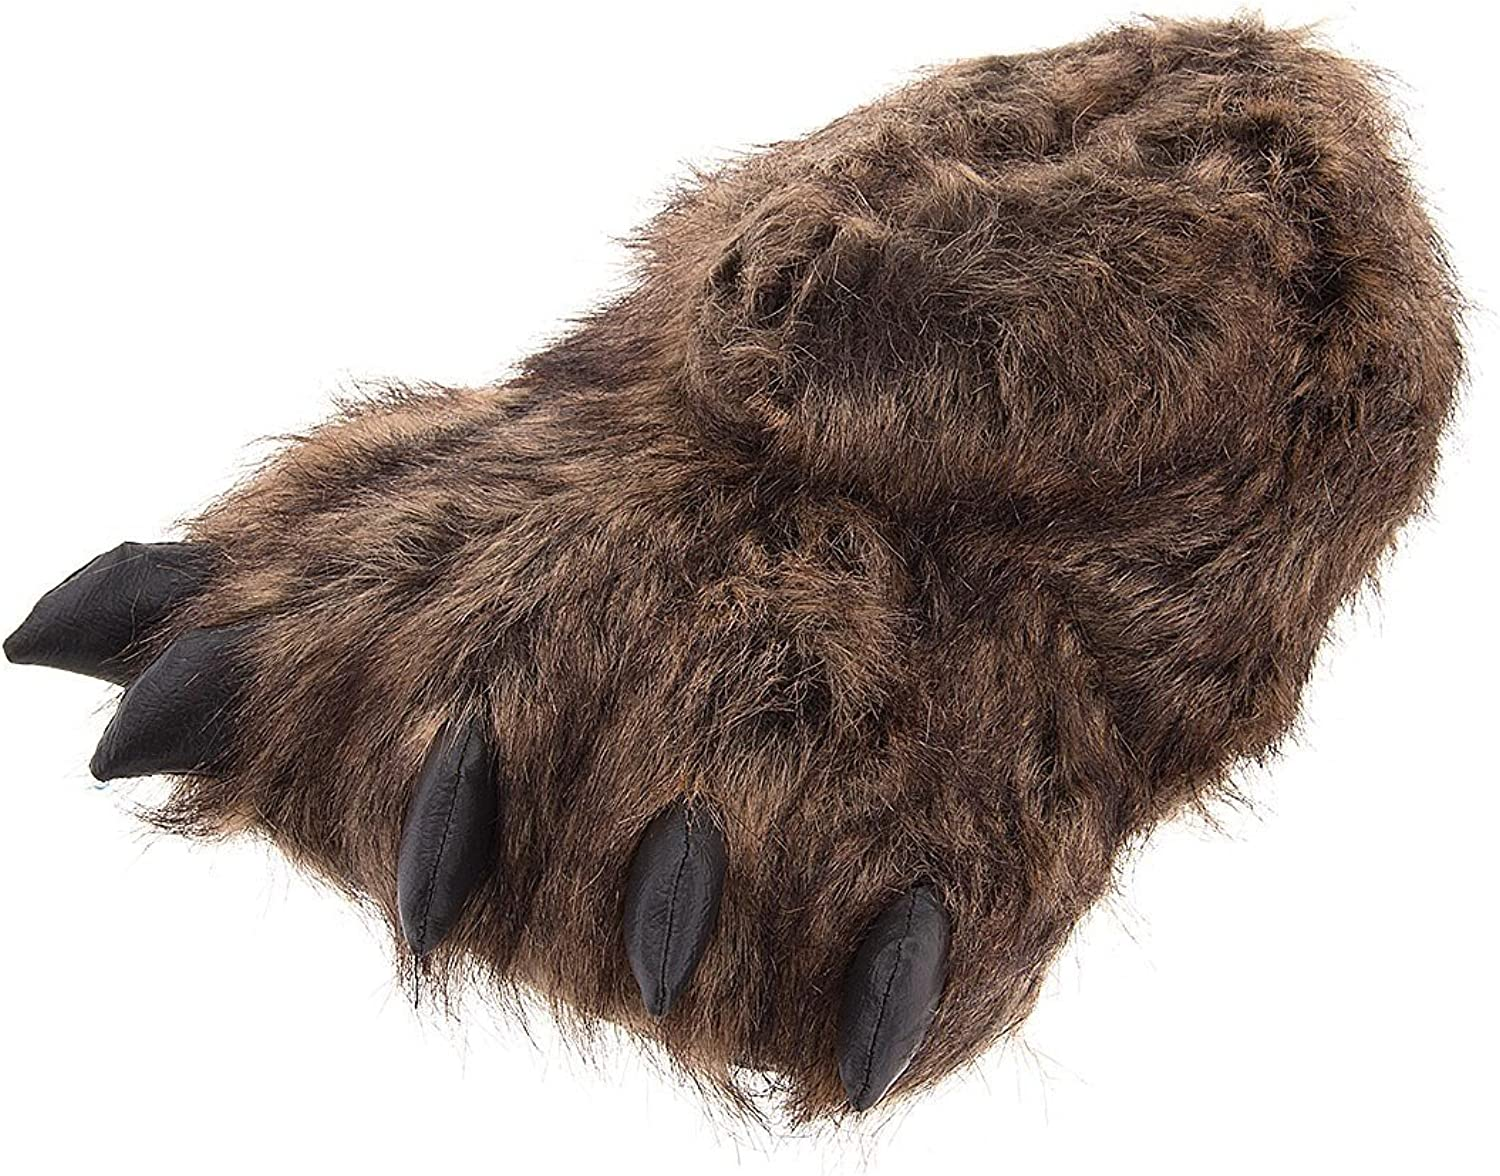 Crazy for Bargains Grizzly Bear Paw Slippers for Women and Men